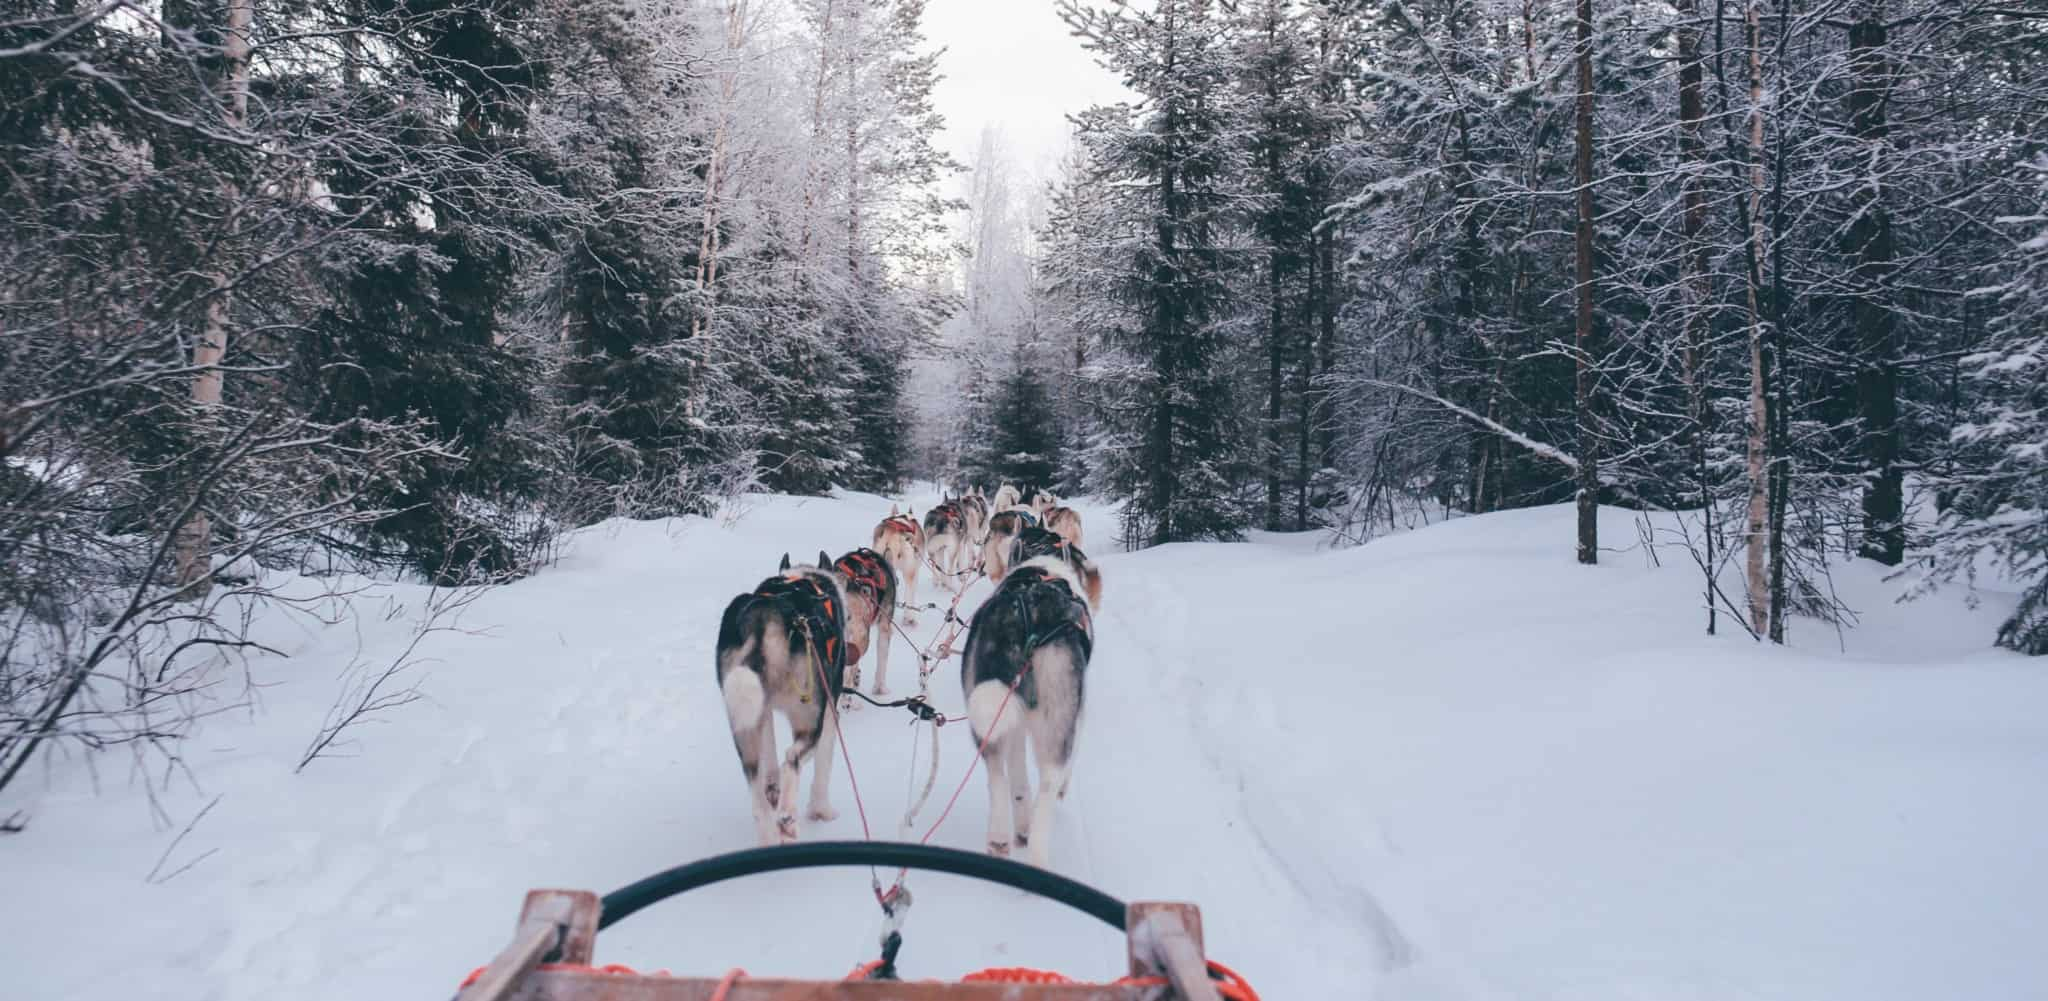 One of the special attractions of a holiday in the winter wonderland of Finland is the possibility of taking a husky tour.